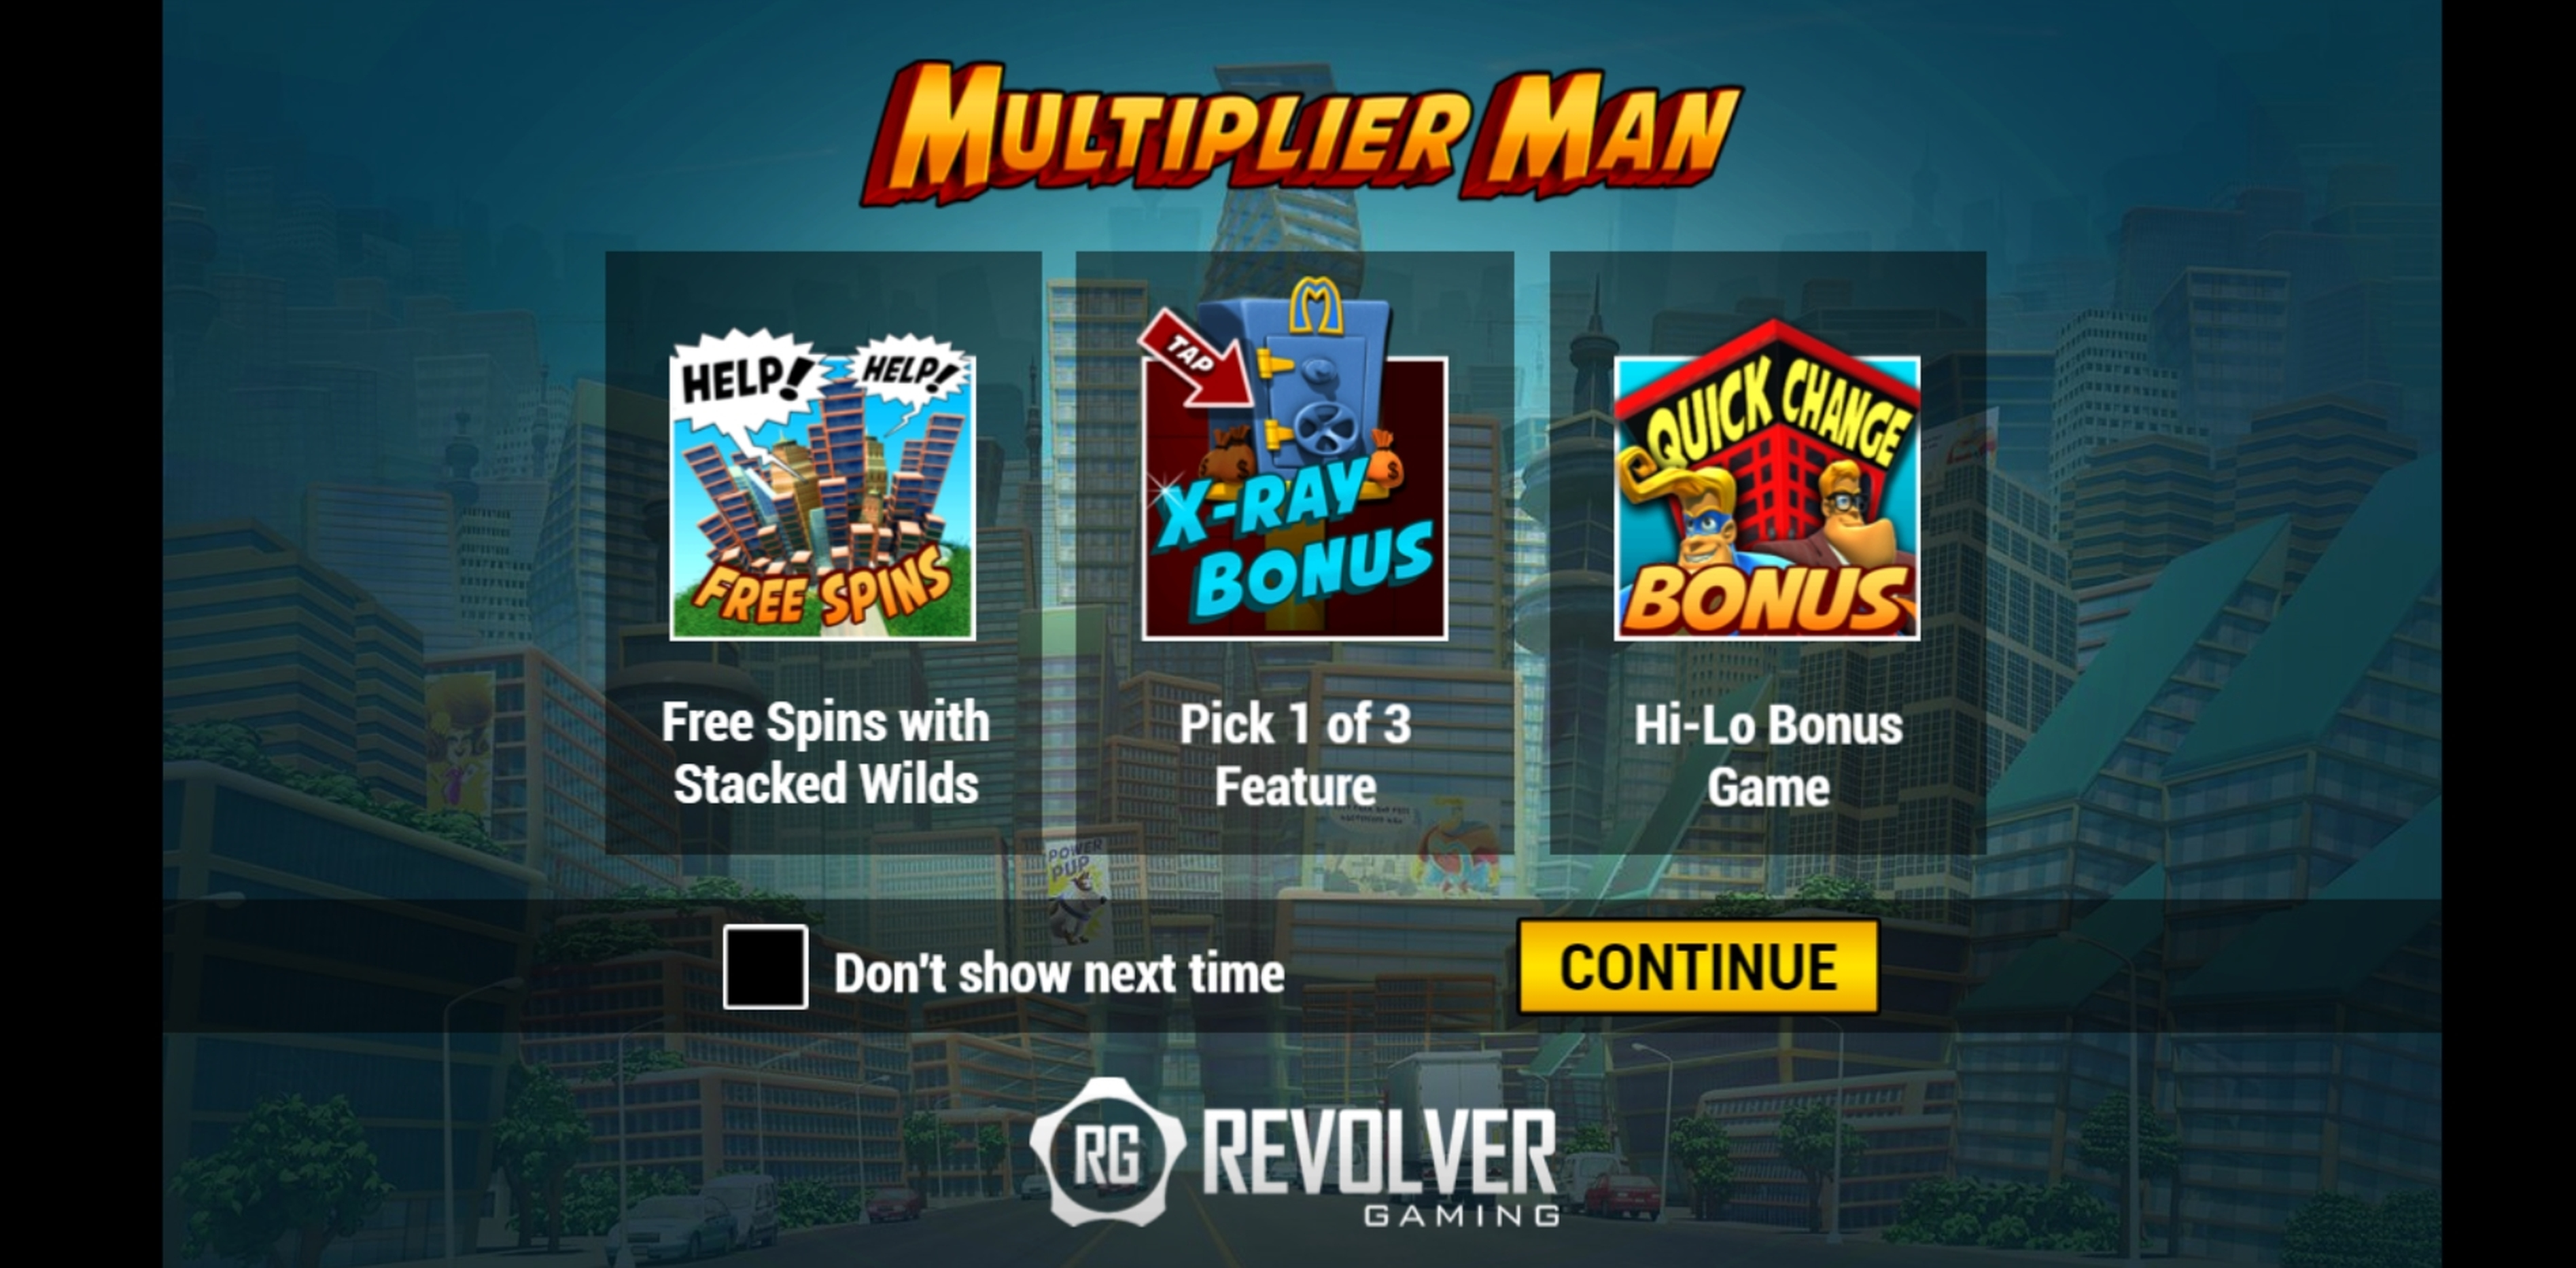 Play Multiplier Man Free Casino Slot Game by Revolver Gaming